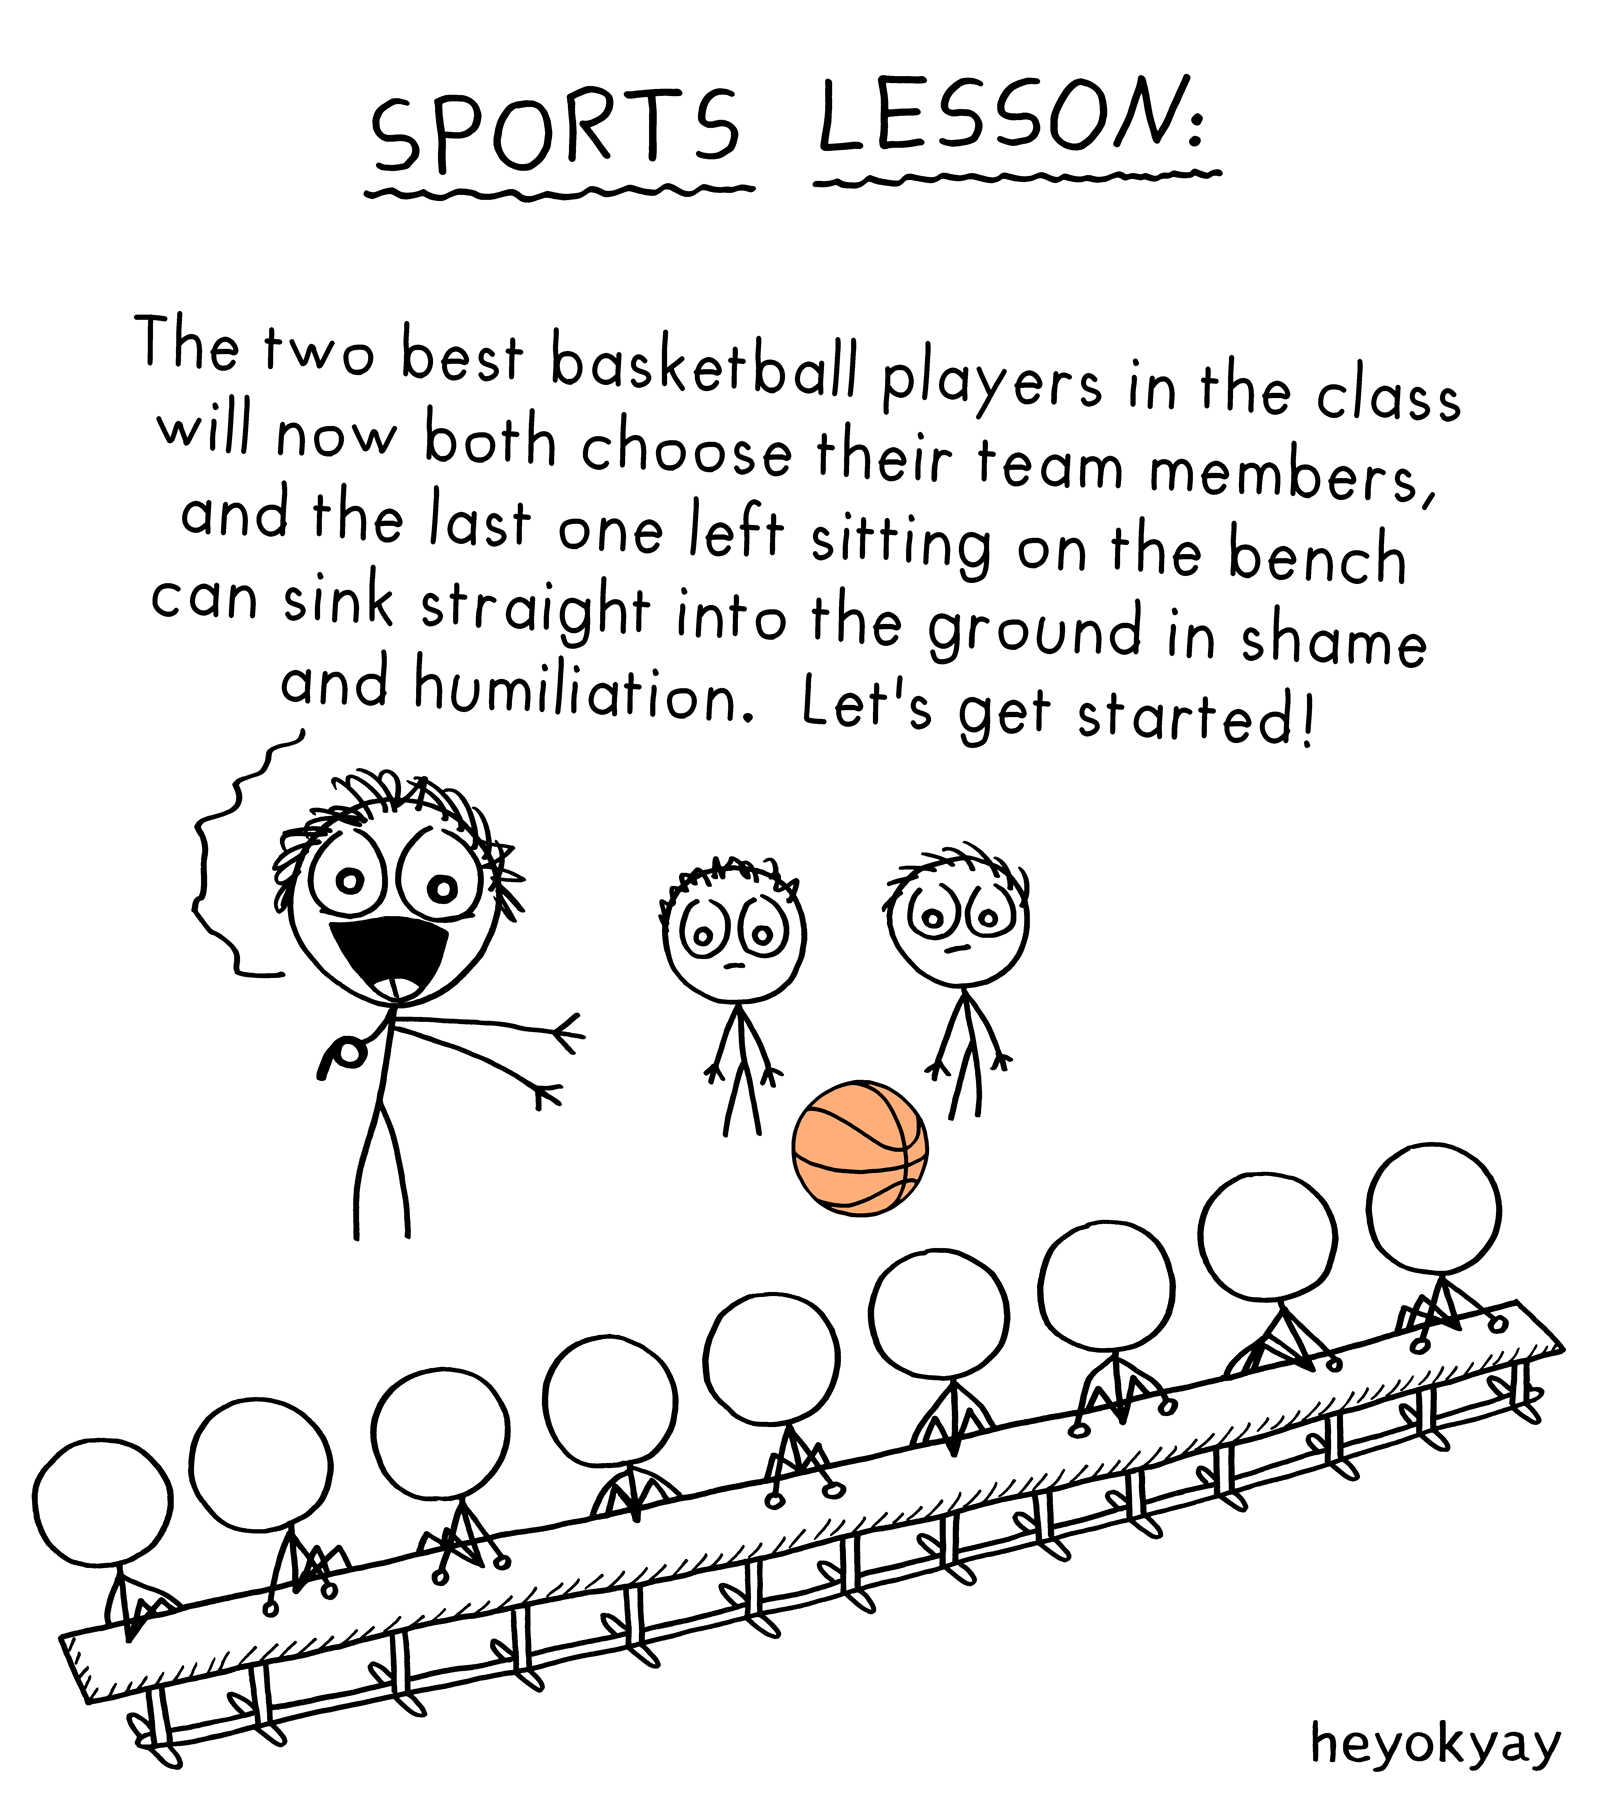 Sports Lesson heyokyay comic